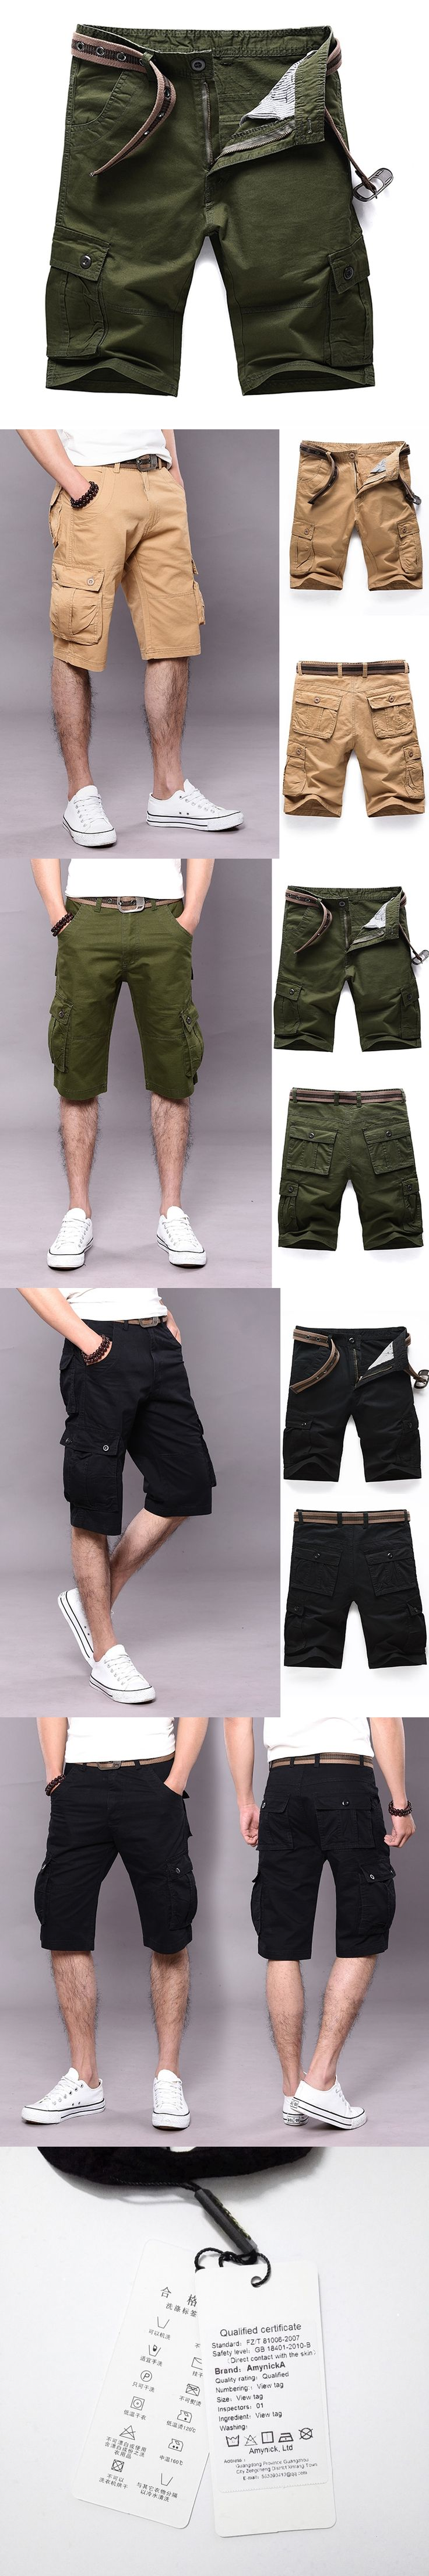 Military Shorts Multi-pocket Militar Tactical Cargo Outdoor Combat Swat Army Training Sport Hiking Hunting Shorts BYL9306